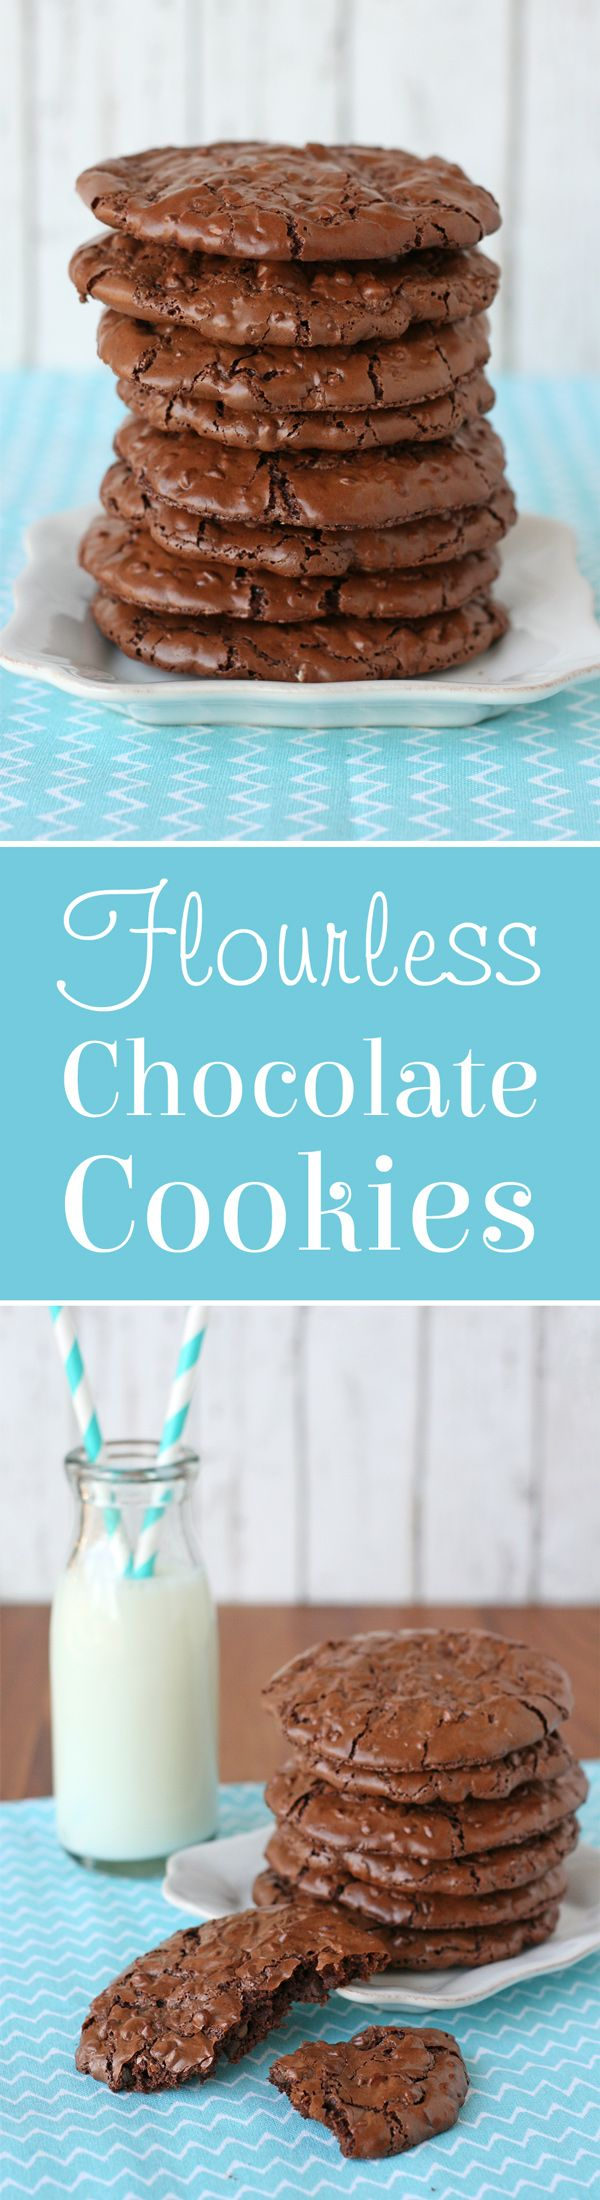 These Flourless Chocolate Cookies are so delicious and fudgy you would never know they're gluten free and dairy free!